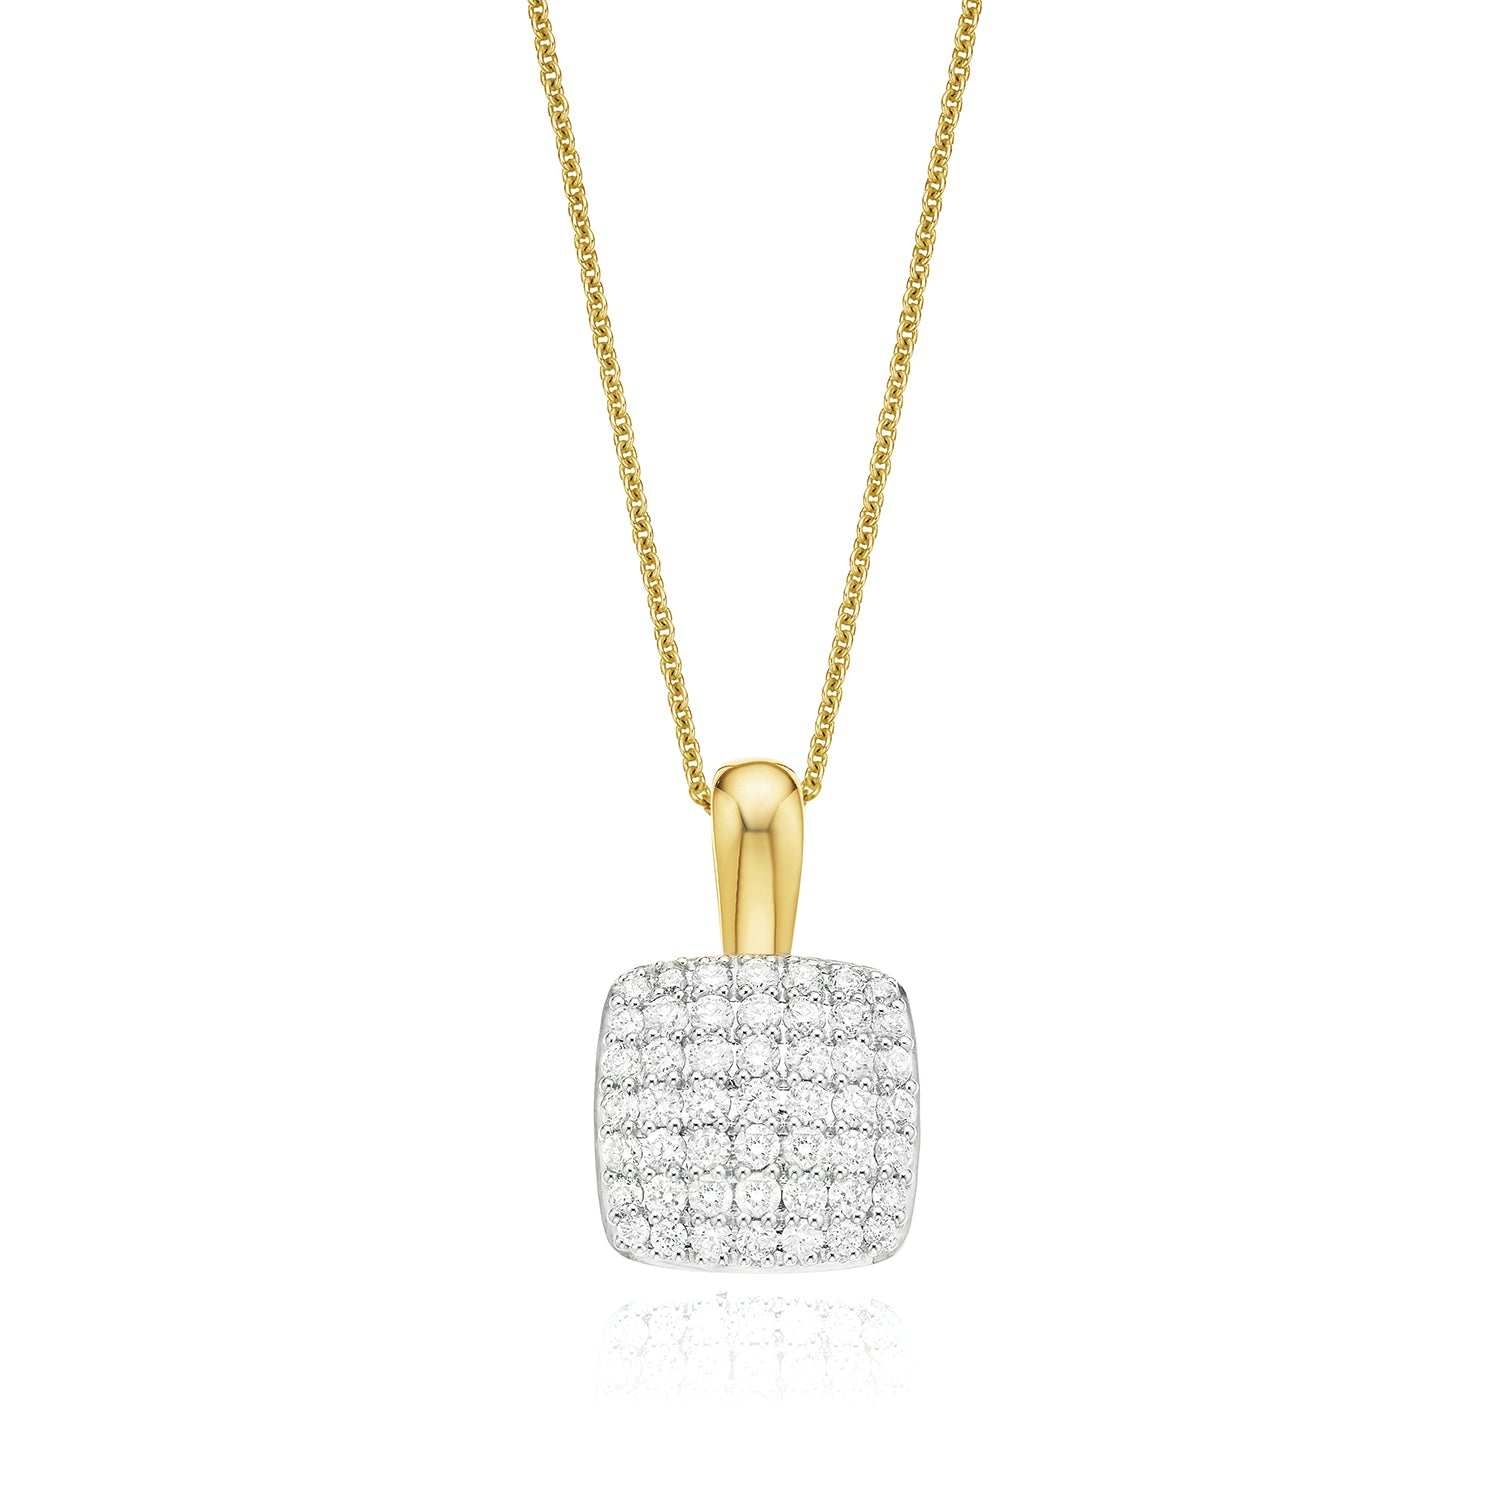 18ct Yellow Gold Round Brilliant Cut with 1 CARAT tw of Diamond Pendant